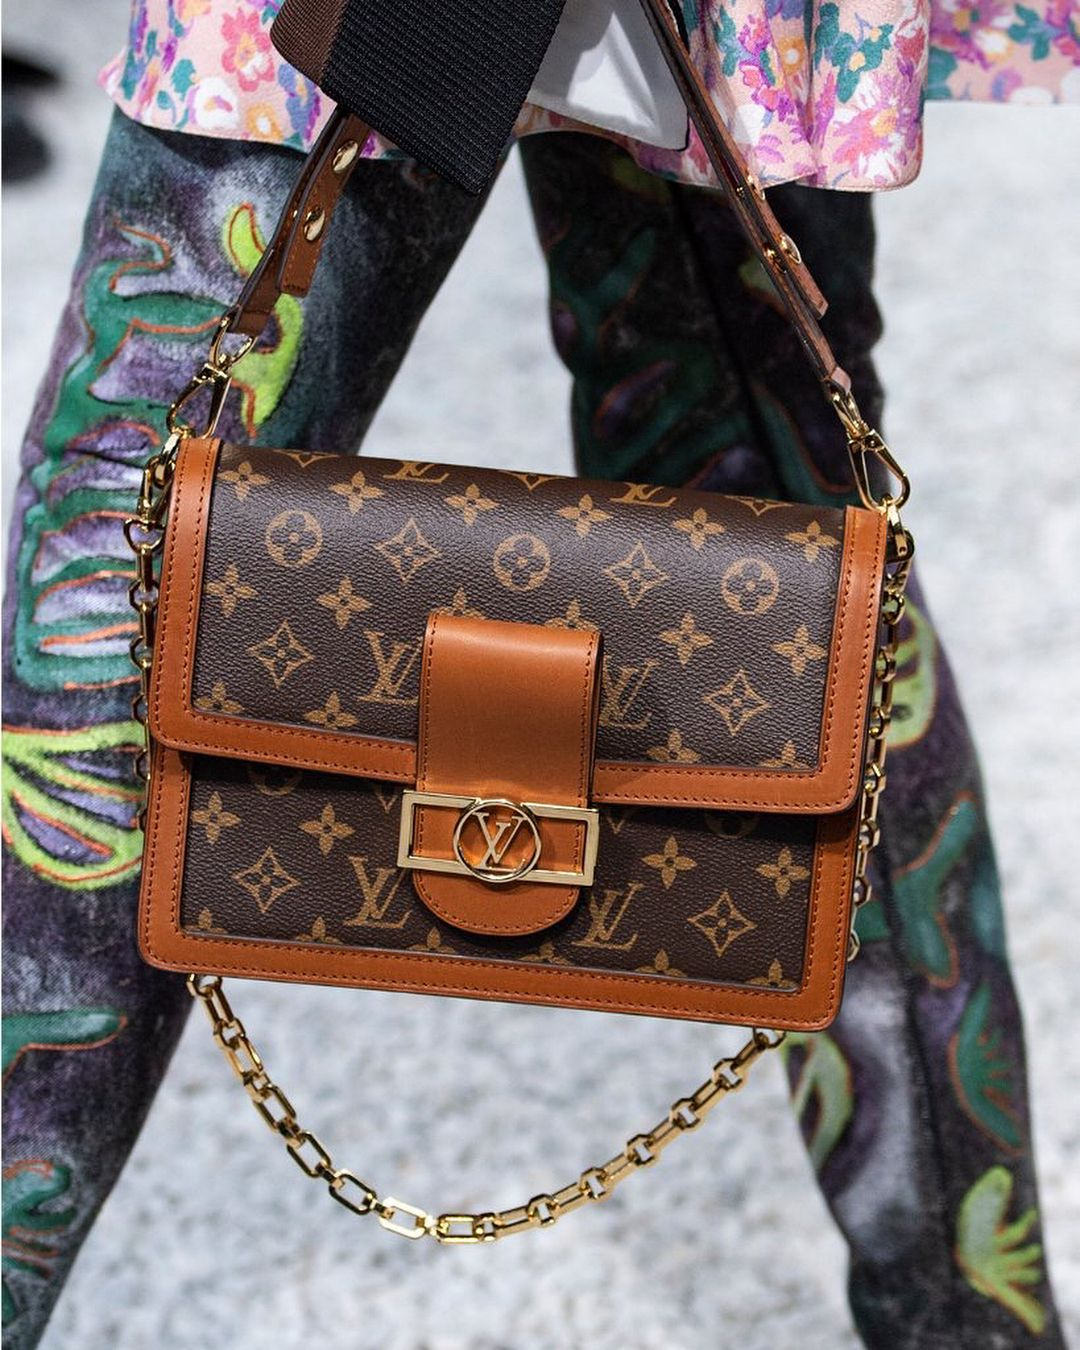 94a370e8f9f0 Monogram handbags from the  LouisVuitton Cruise 2019 Collection ...